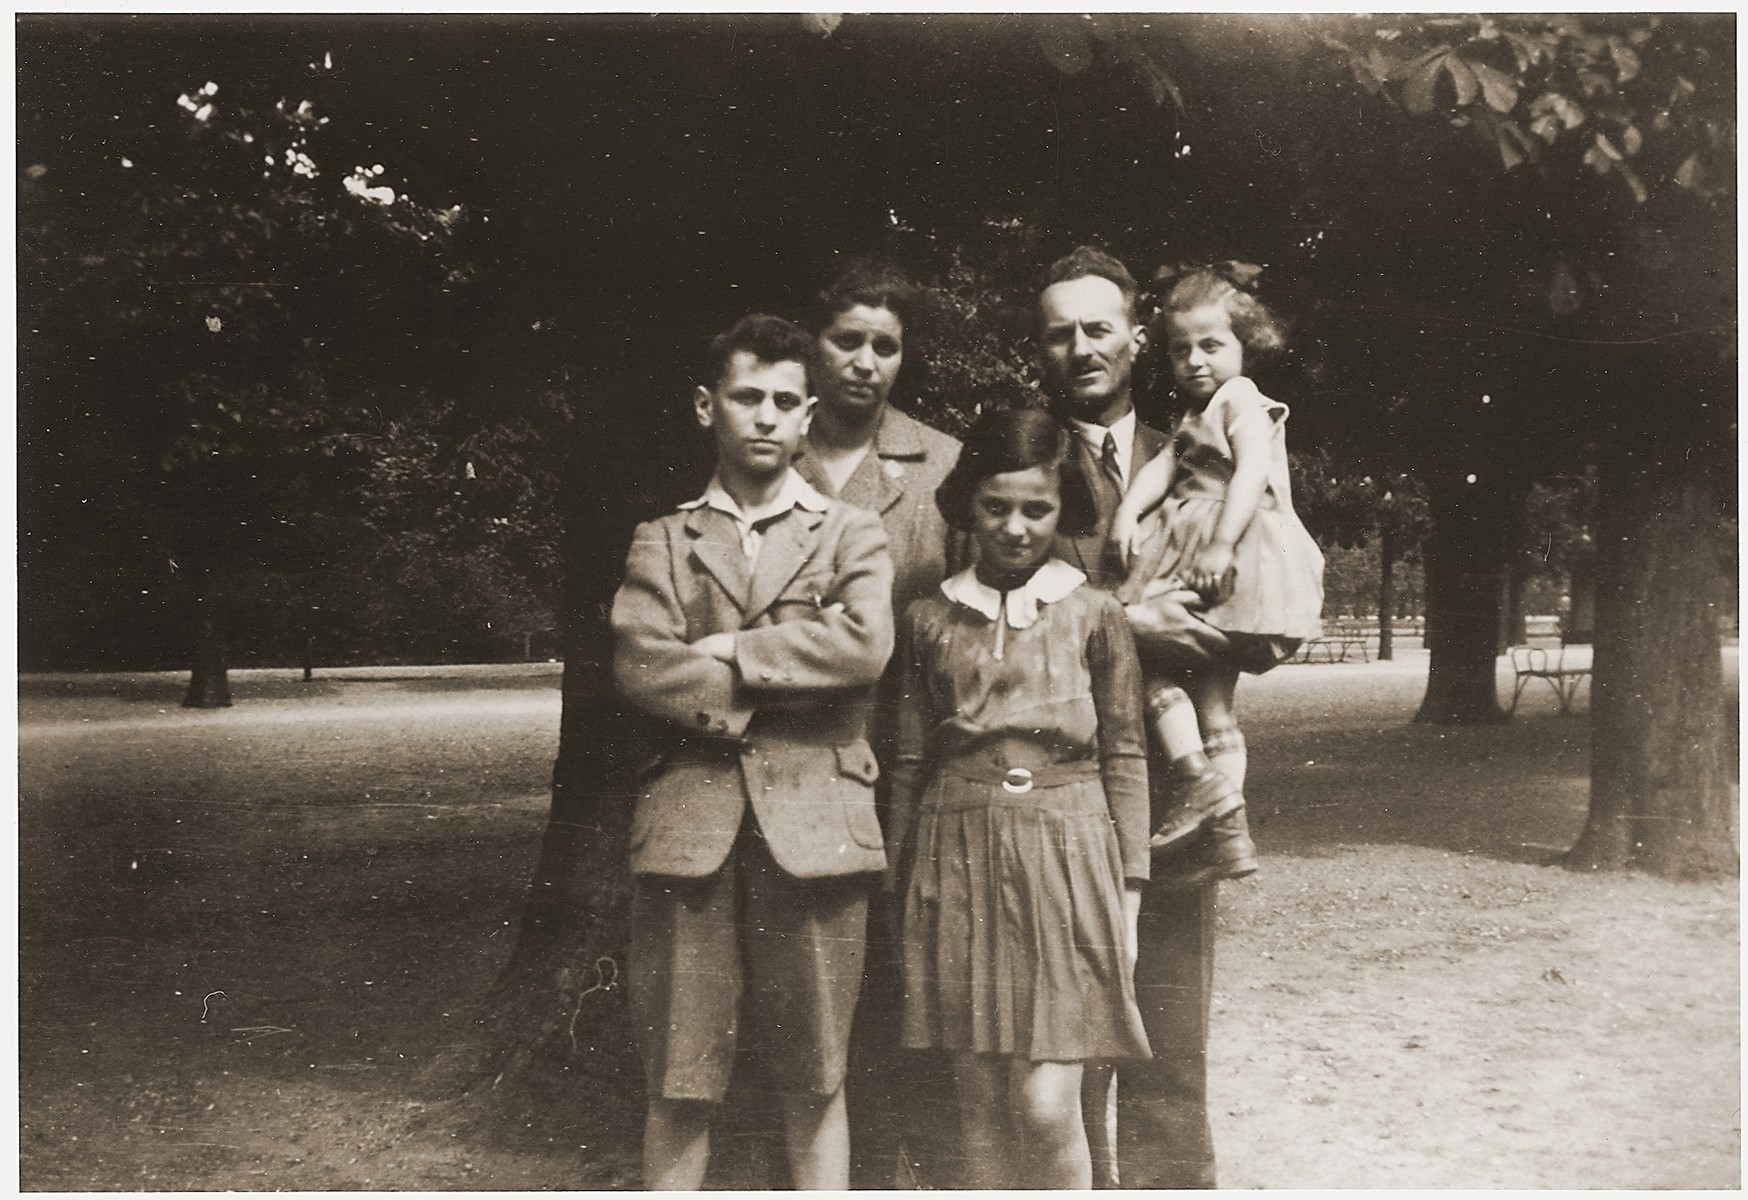 The Spritzer family poses in a park in Vienna.  Pictured are Max and Elsa Spritzer with their three children, Julius, Suzanne and Lisbeth.